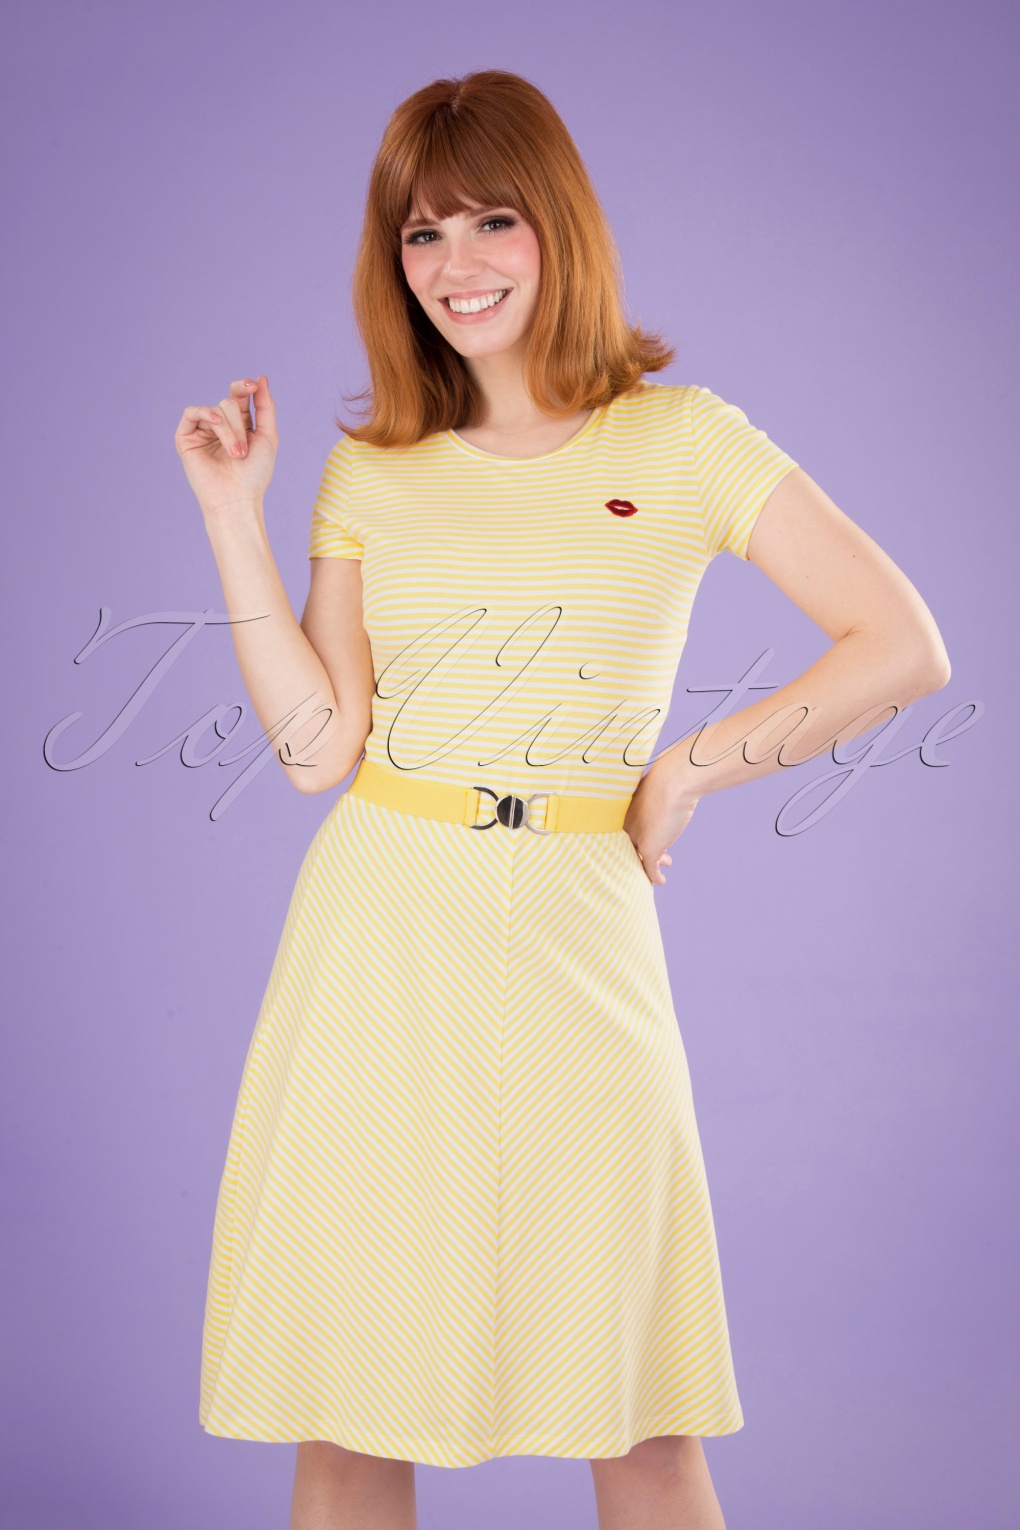 60s Dresses | 1960s Dresses Mod, Mini, Hippie 60s Oh Yeah Stripes Dress in Yellow and White £24.95 AT vintagedancer.com